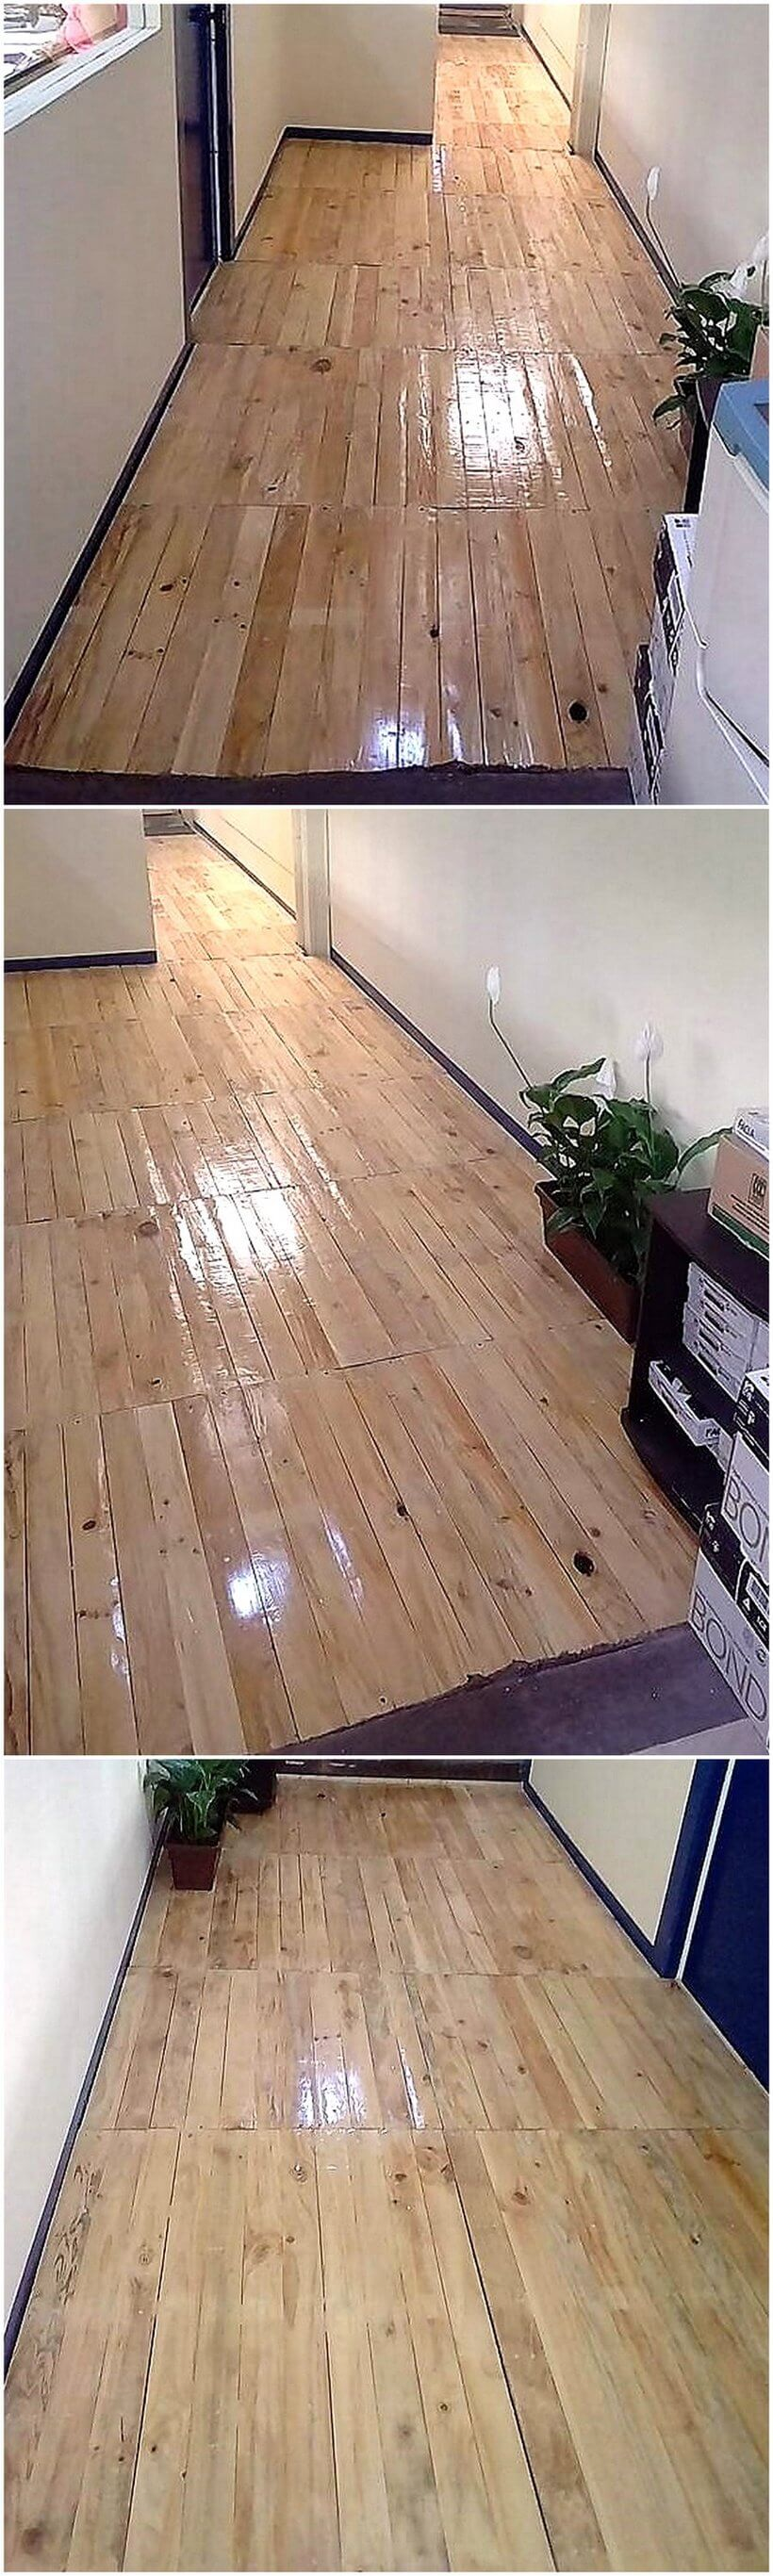 pallets wooden flooring idea